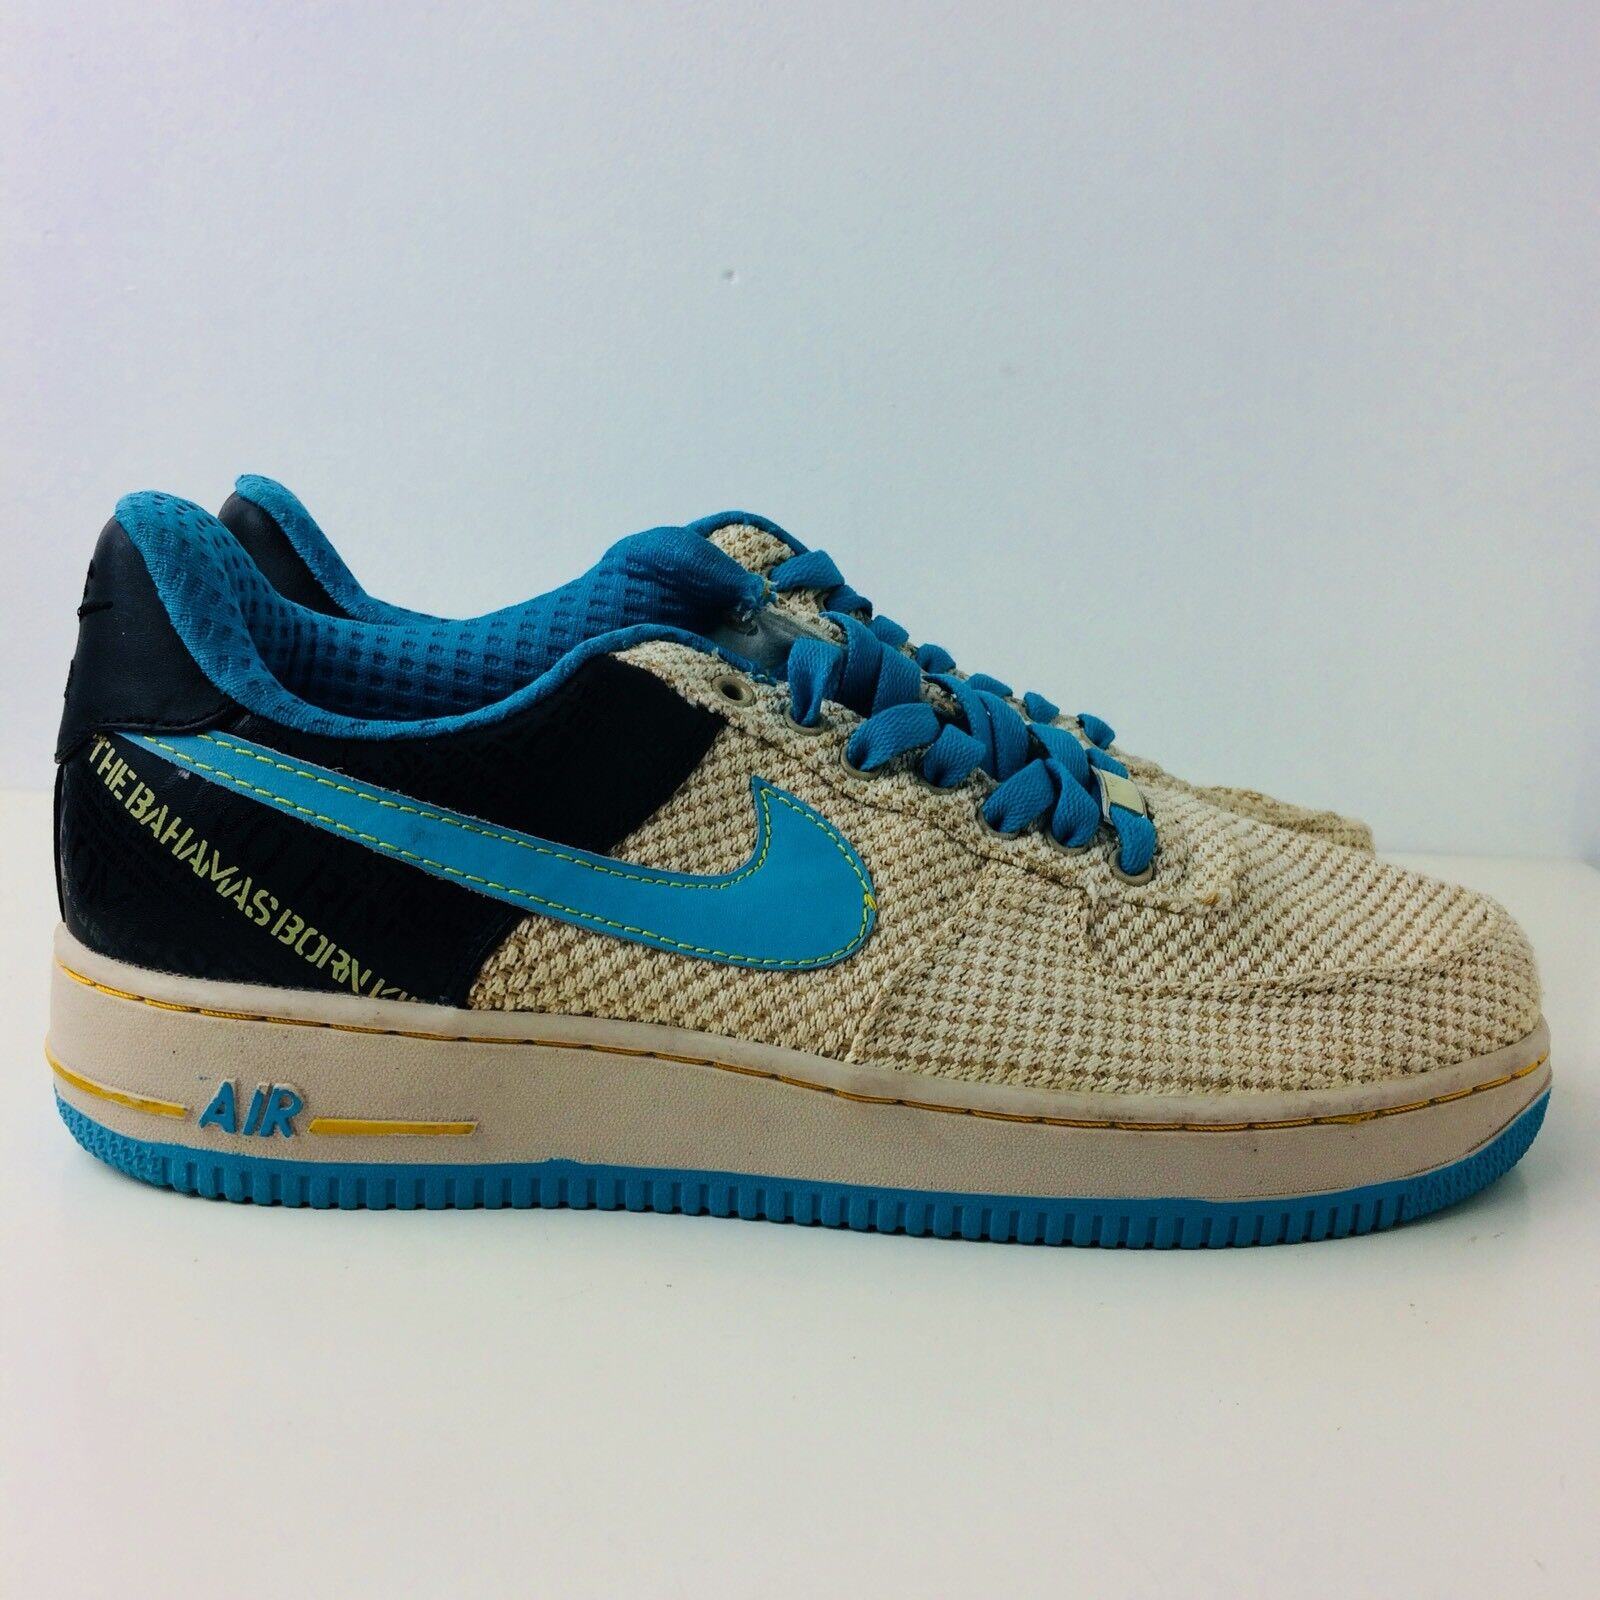 2018 NIKE Air Force One Original Six MYCHAL THOMPSON NBA Sneakers Size 11